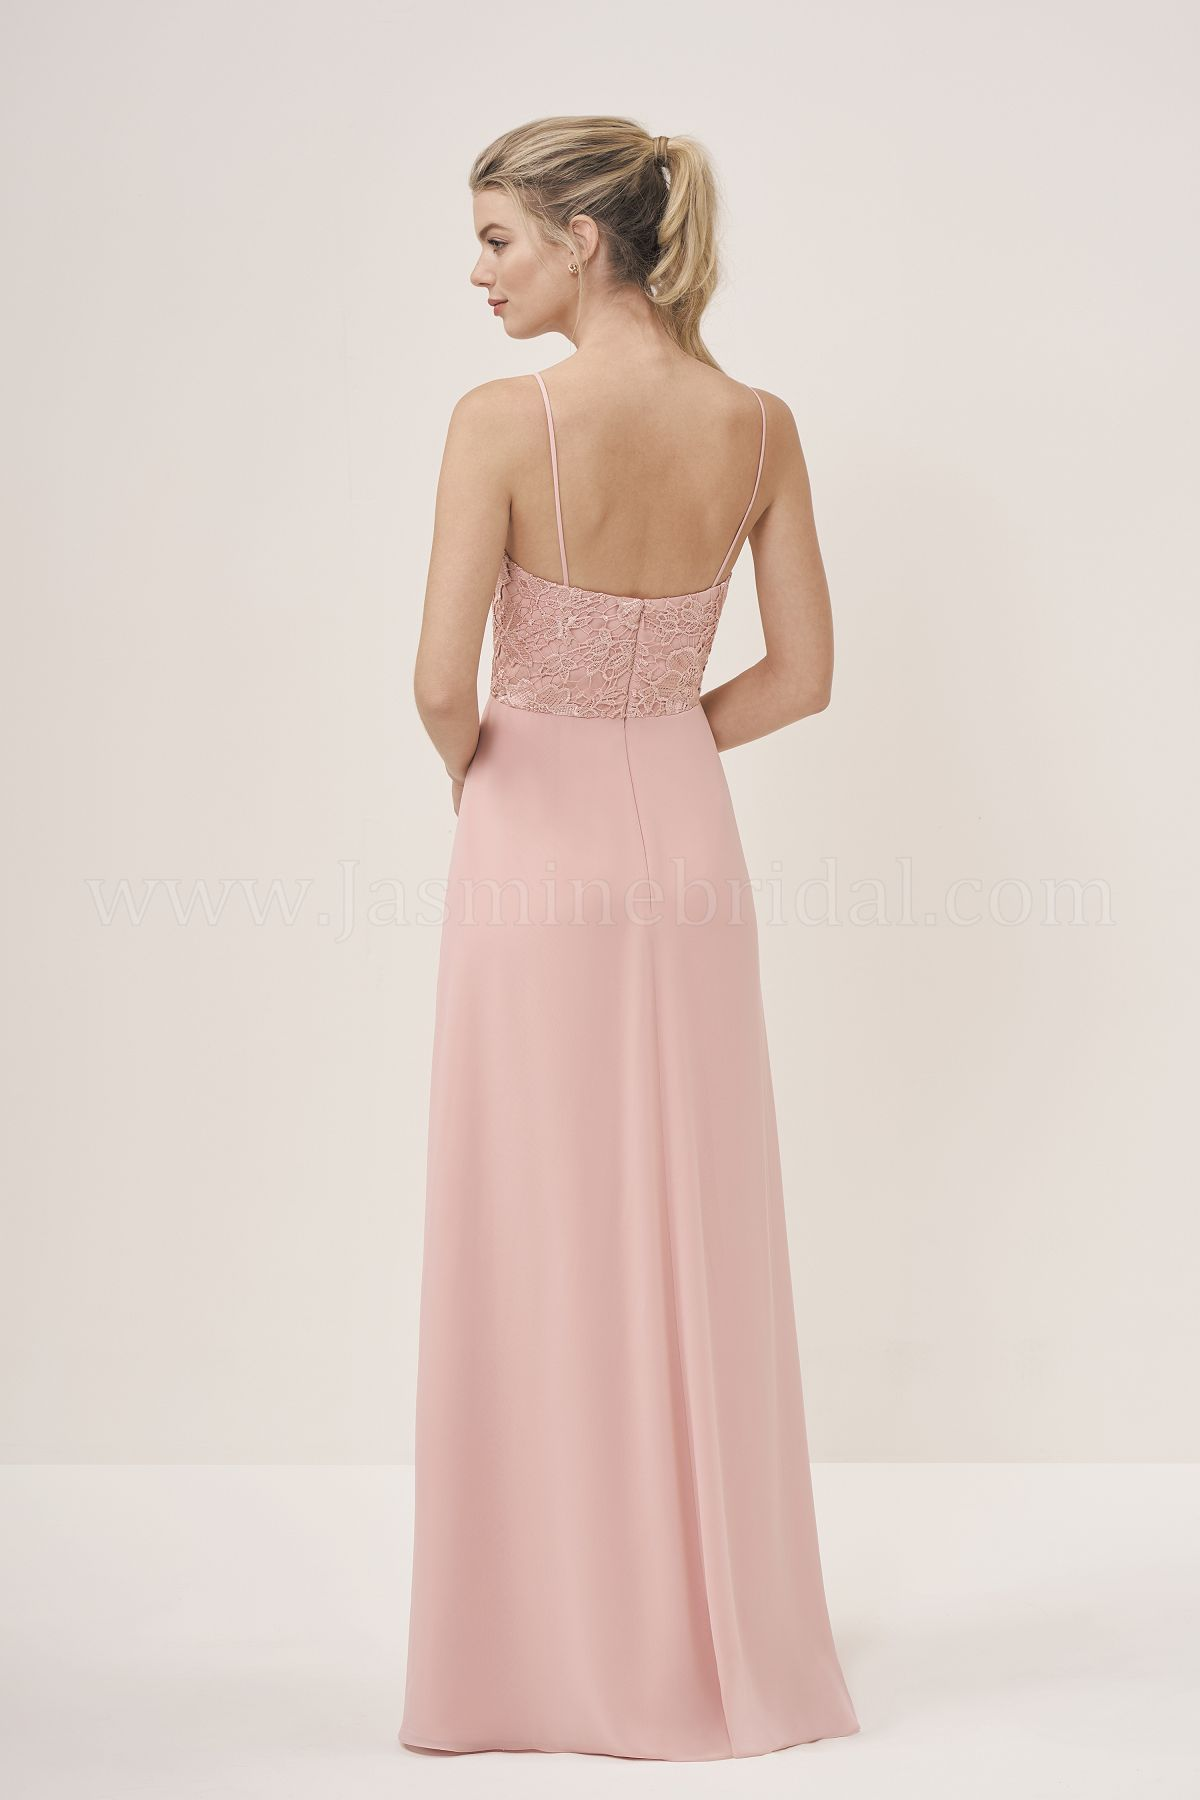 bridesmaid-dresses-P196058-B